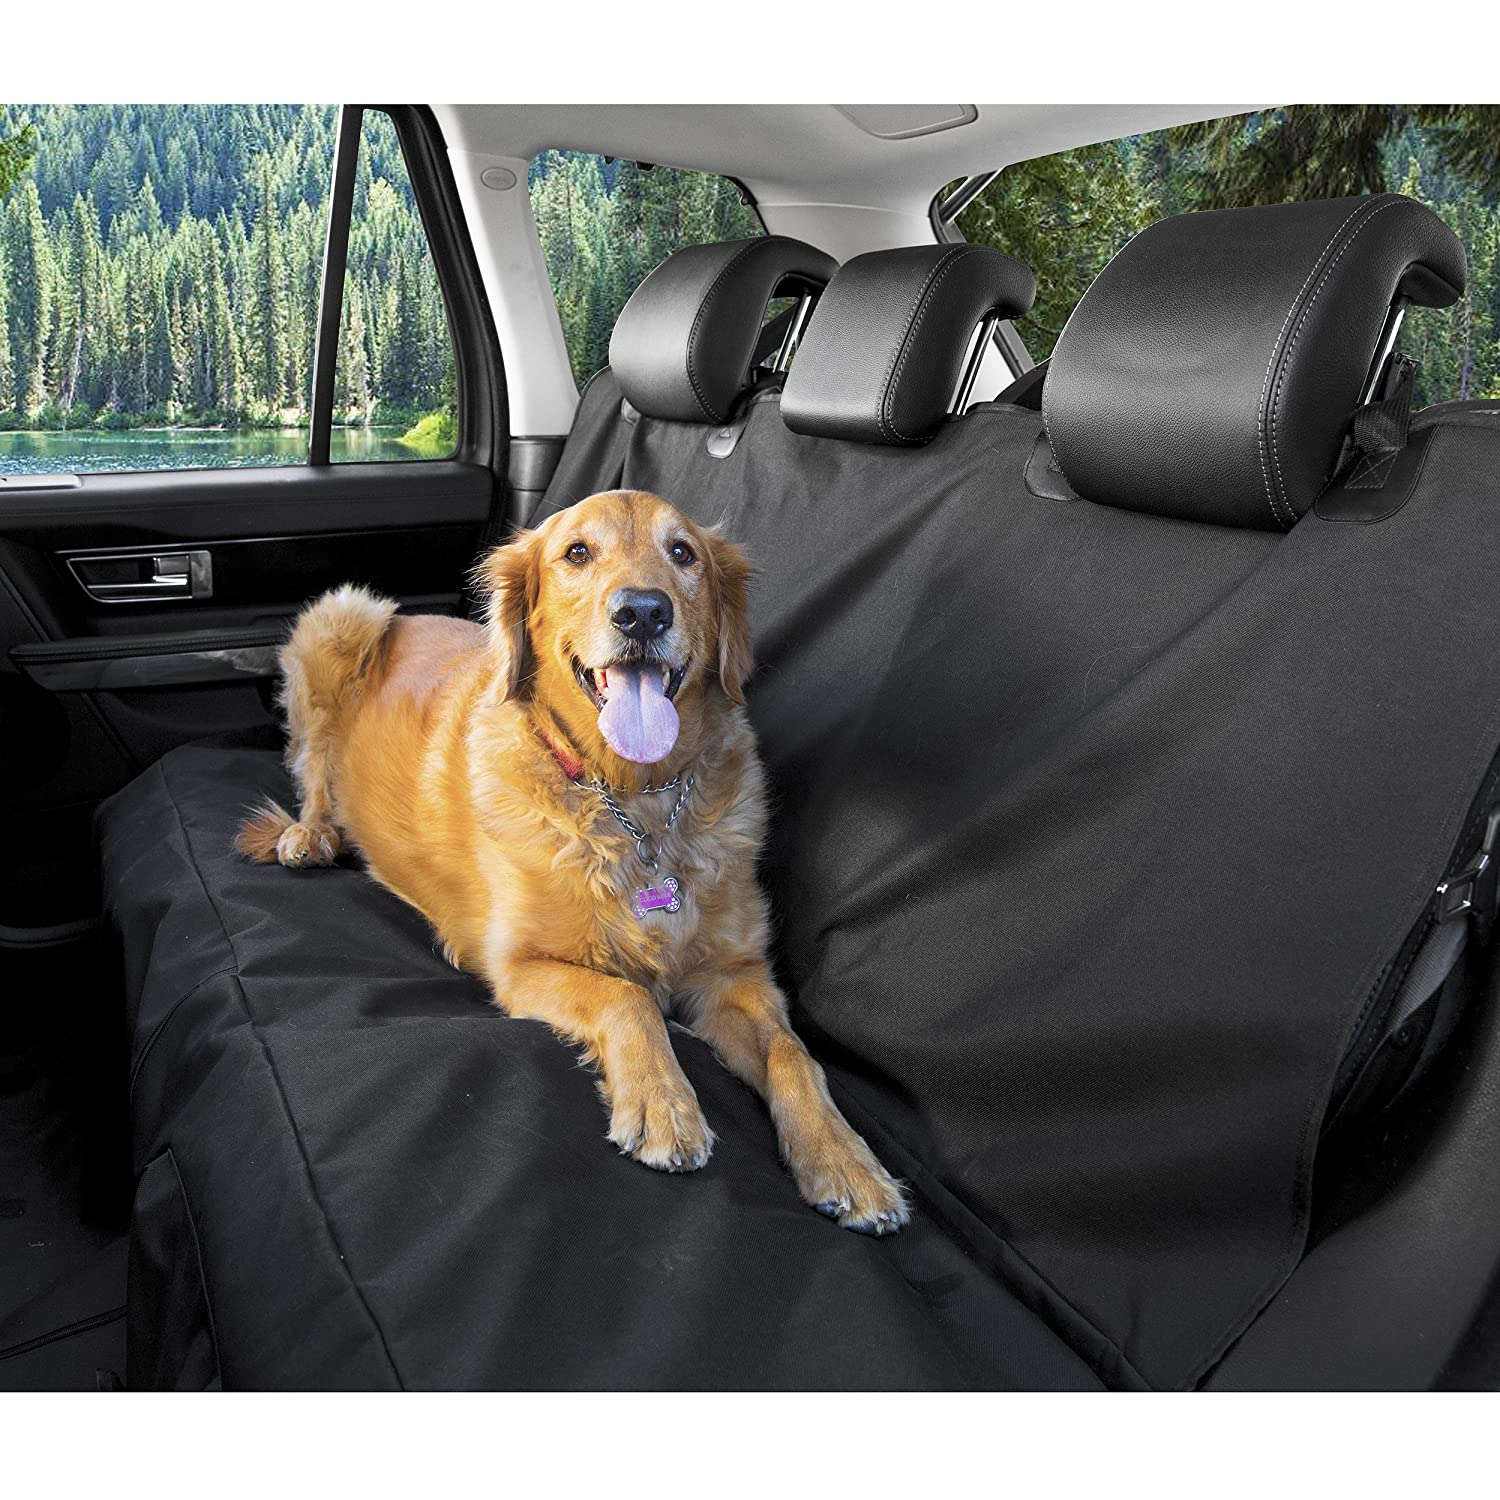 interior accessories pet item safety mat dog hammock carriers cover covers from blanket waterproof home car seat cat in travel